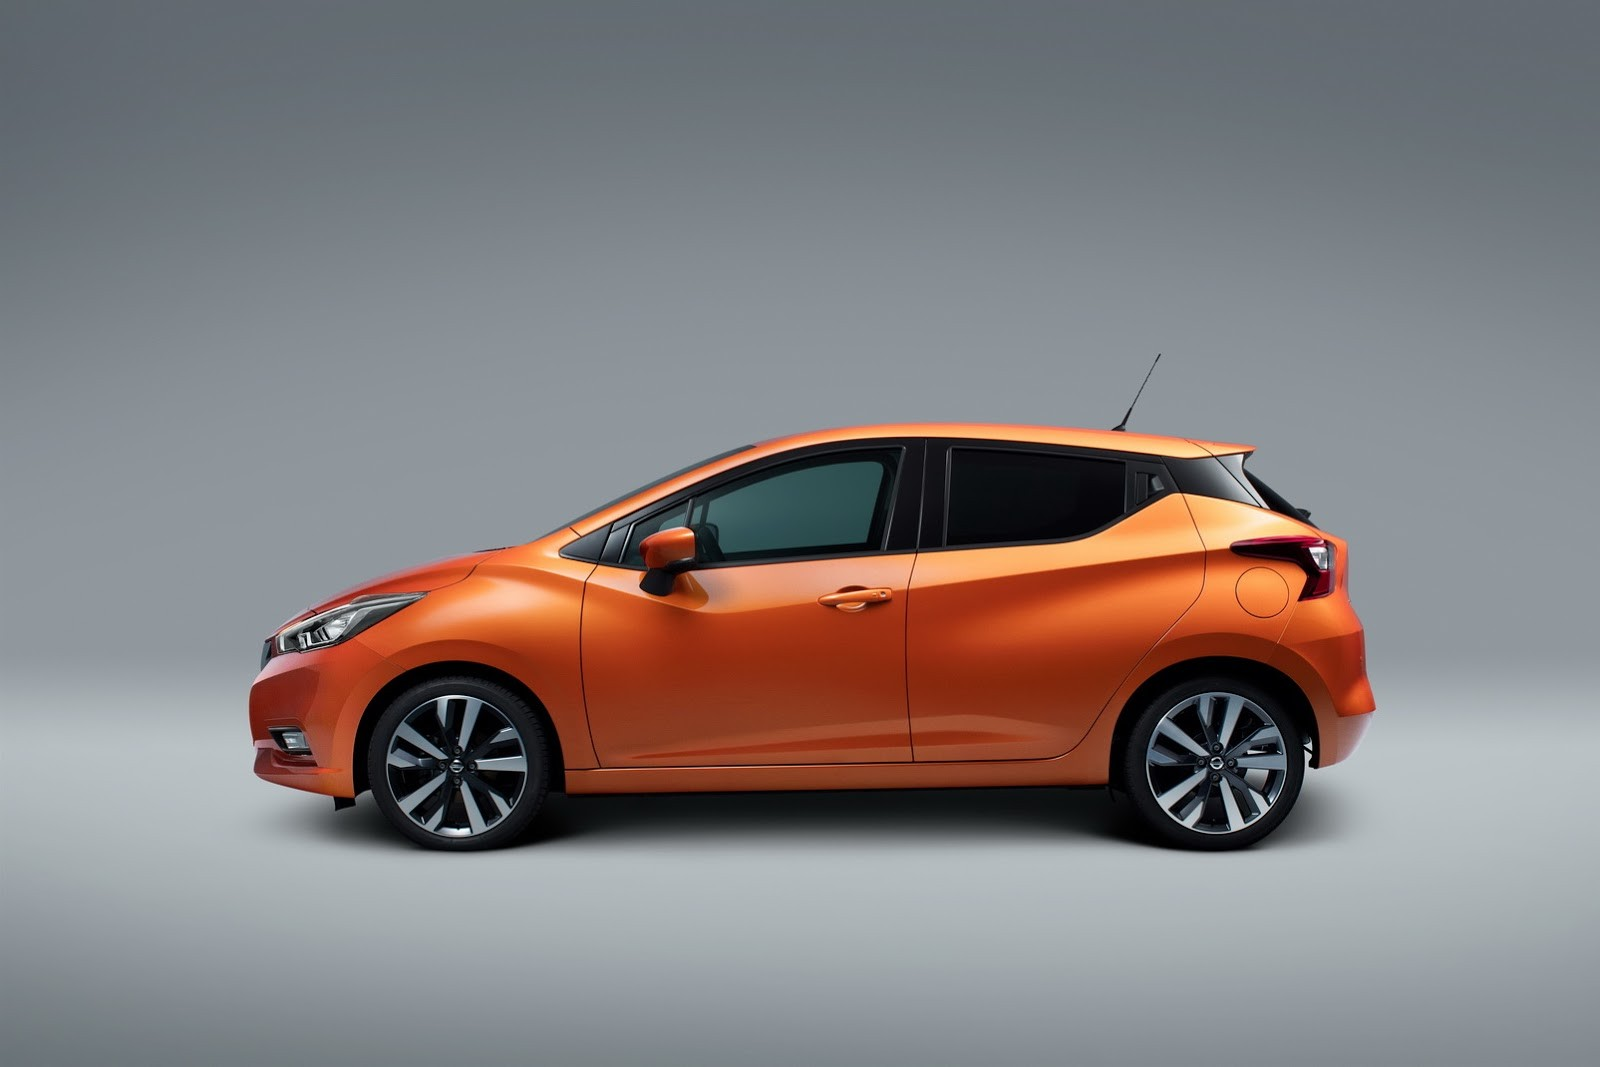 2018 Nissan Micra Nismo Looks Hot But Will It Receive The Clio Rs